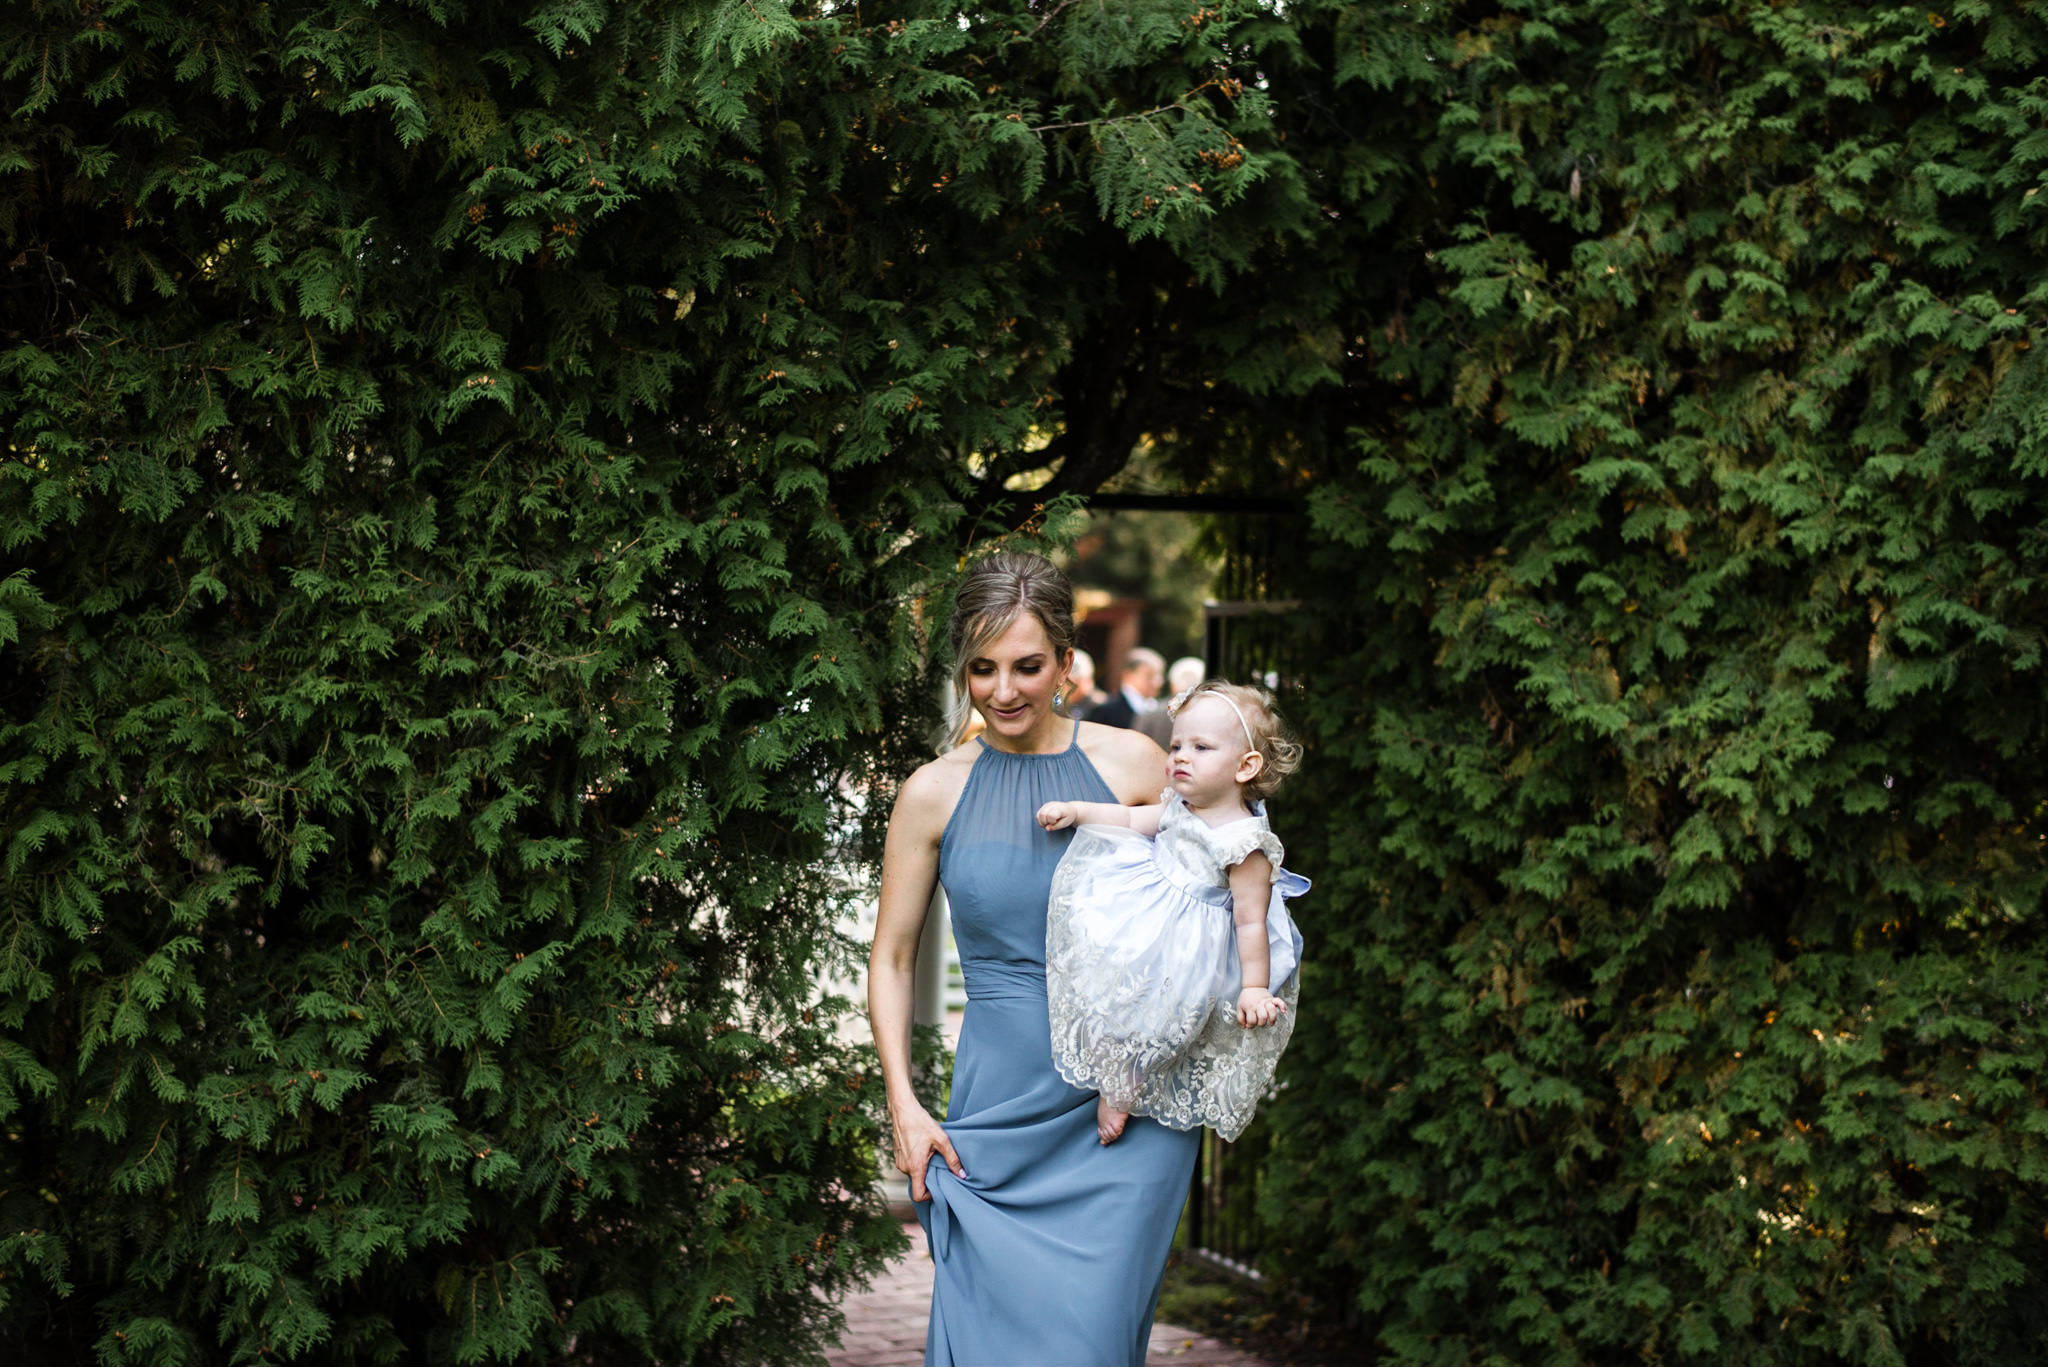 247-guest-candids-cocktail-hour-wedding-photographer-toronto-penryn-park.jpg